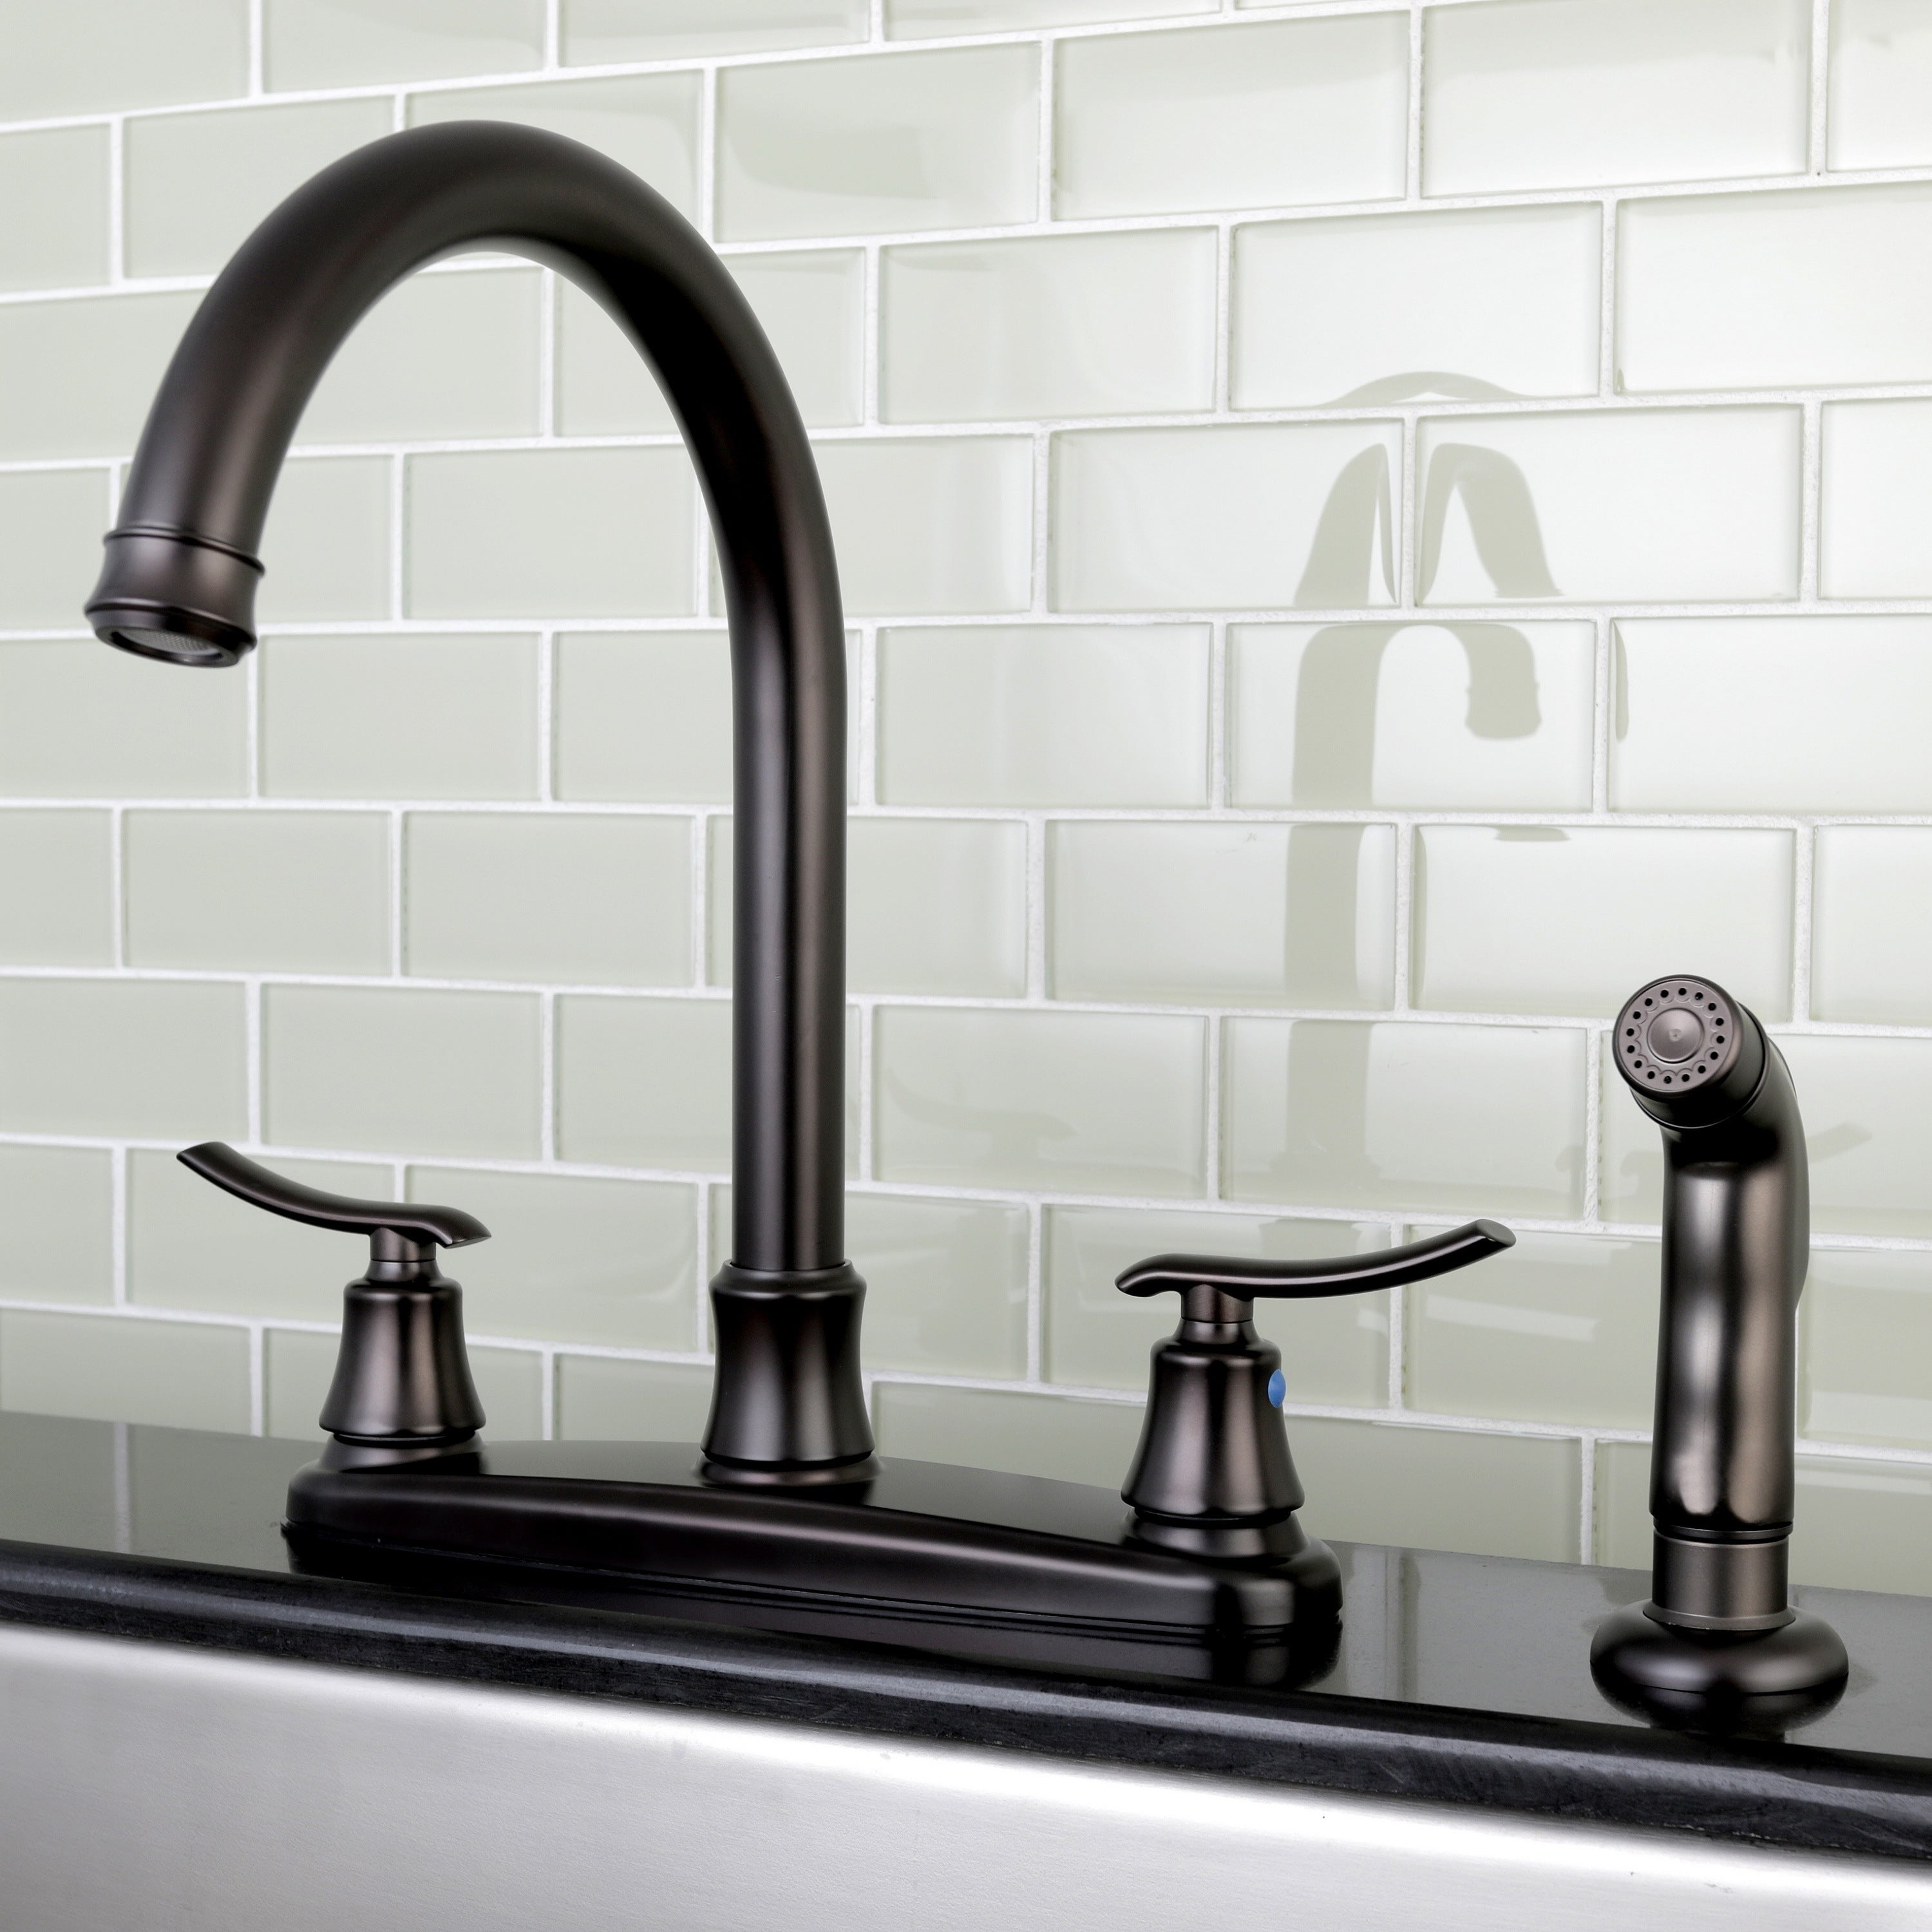 Euro oil rubbed bronze kitchen faucet with side sprayer free shipping today overstock 18912366